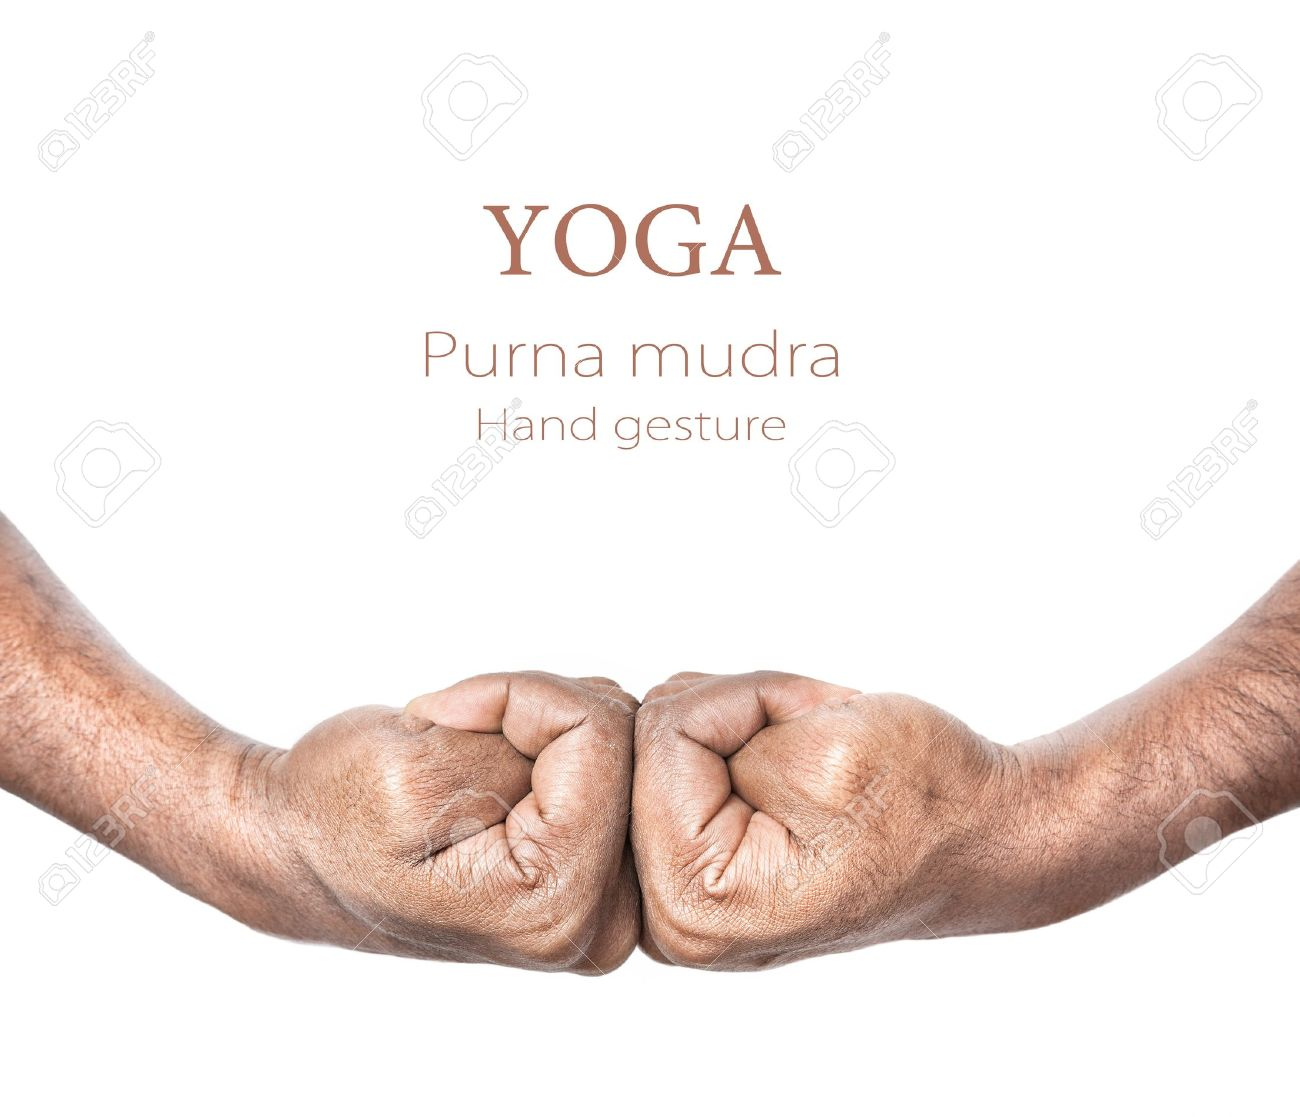 Hands in purna mudra by Indian man isolated at white background. Free space for your text and can be used in articles about mudras Stock Photo - 11858848